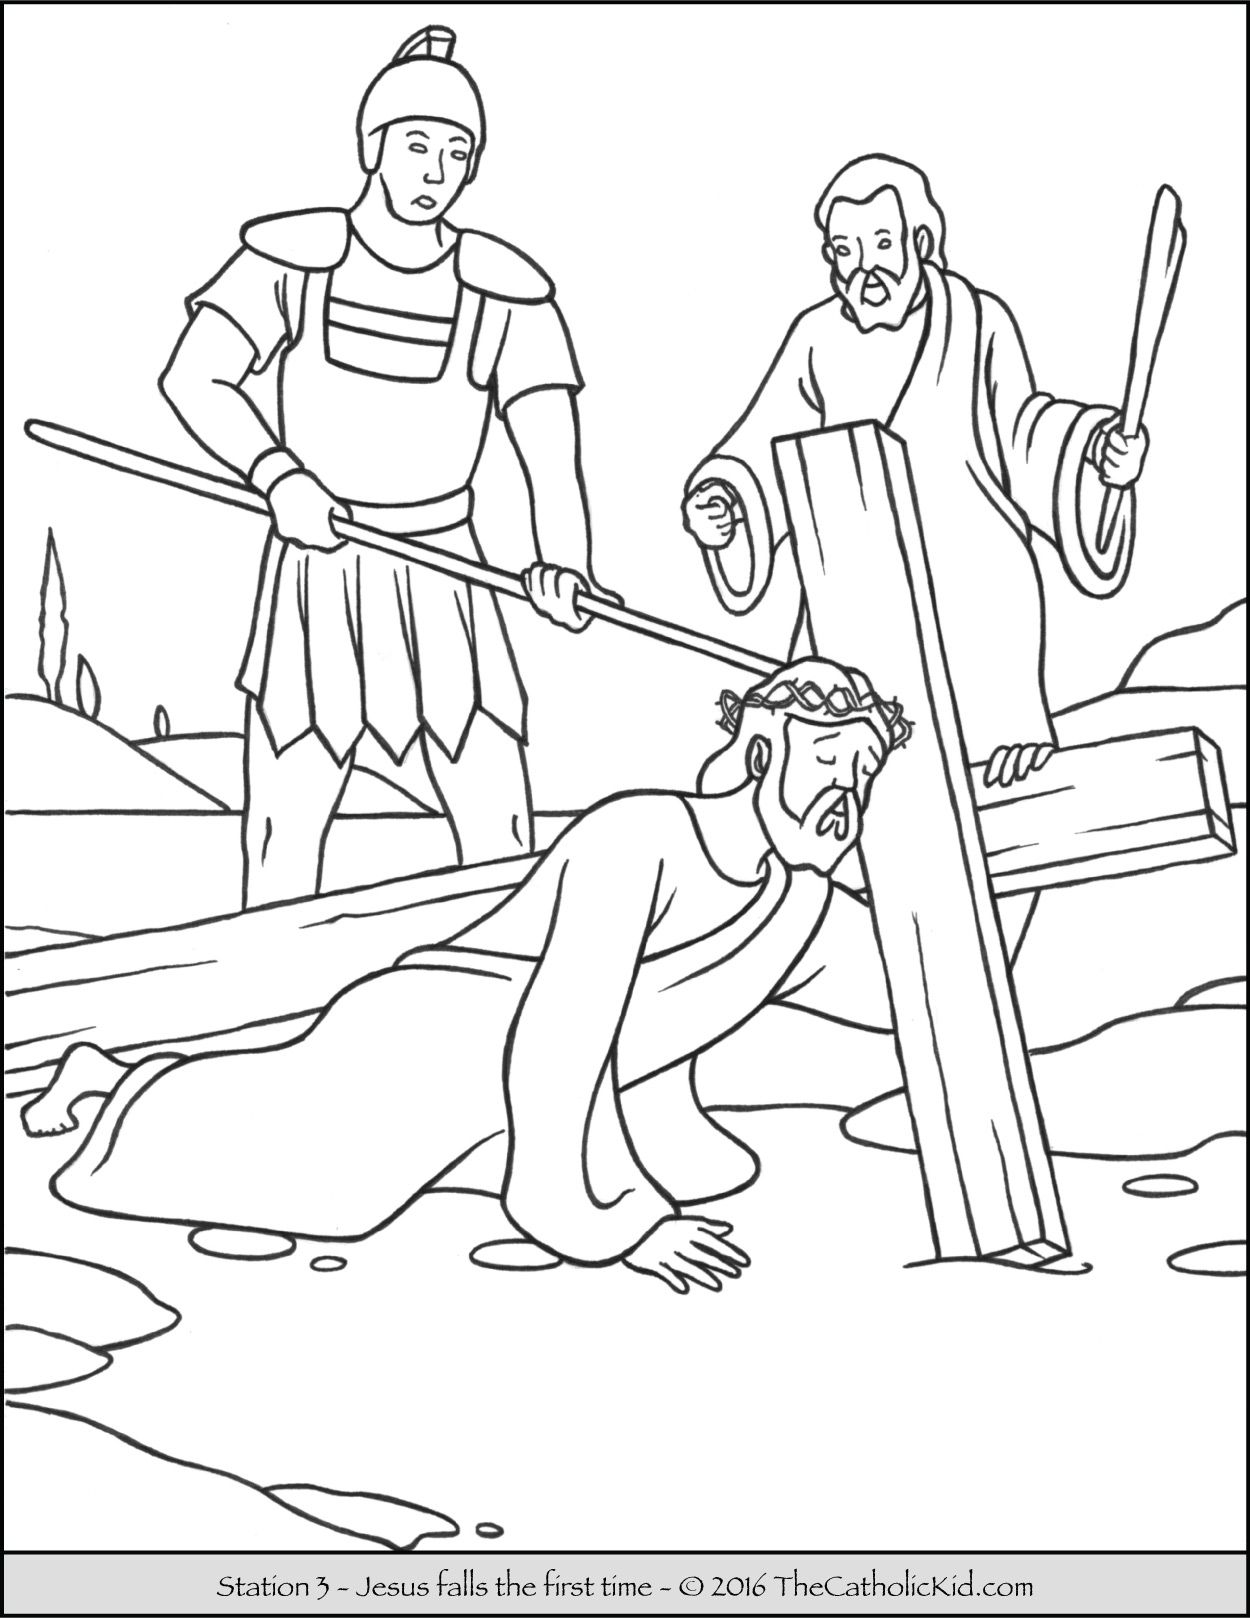 printable pictures of jesus on the cross stations of the cross coloring pages 3 jesus falls the of cross on the pictures jesus printable